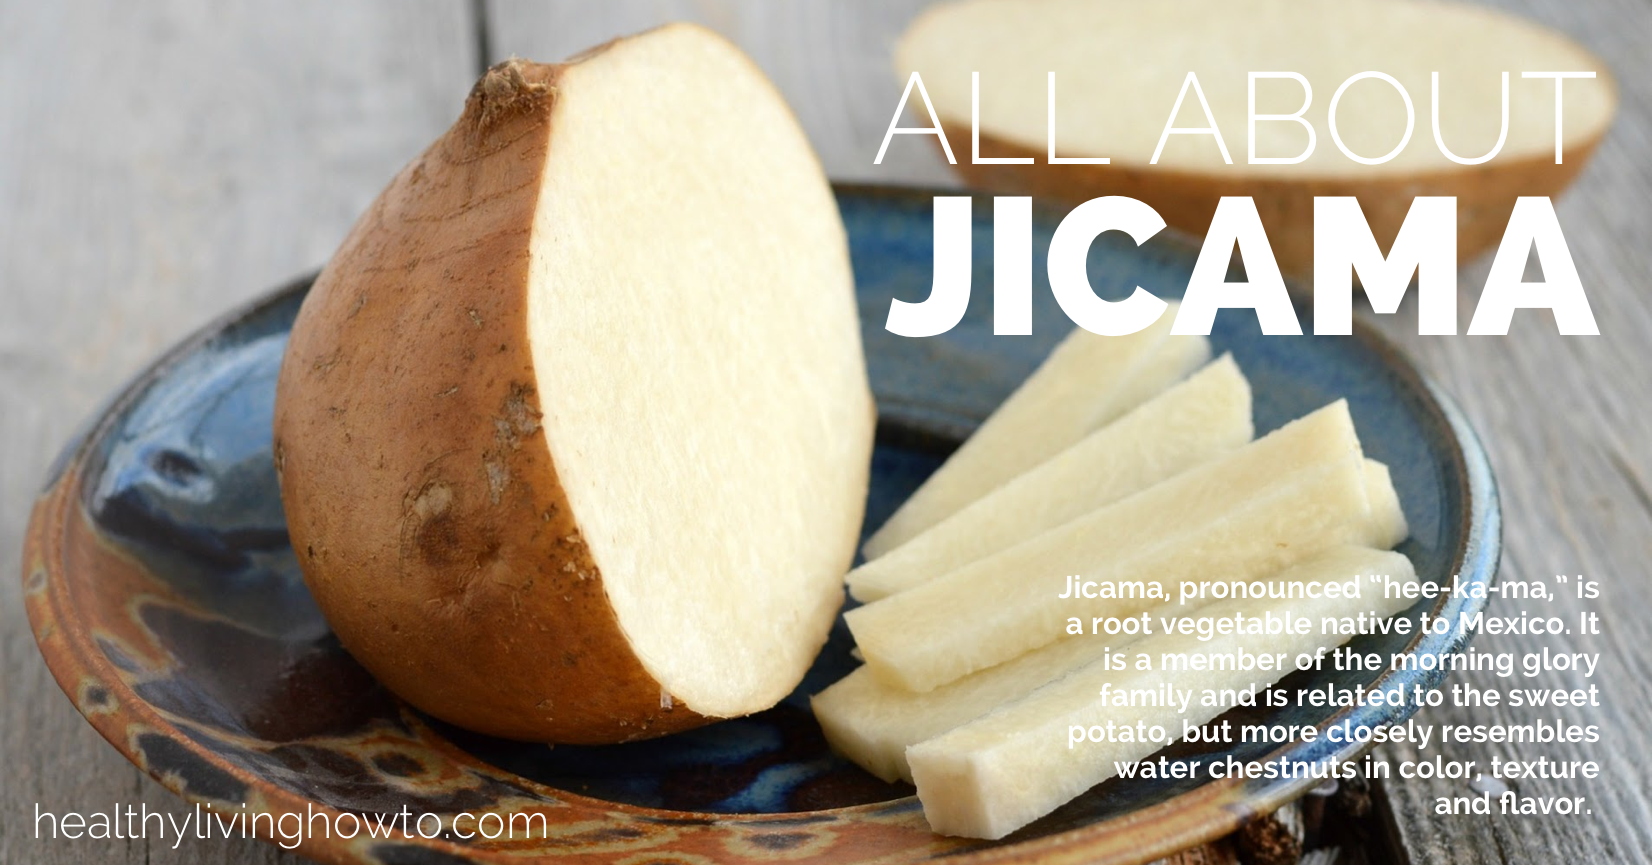 All About Jicama| healthylivinghowto.com